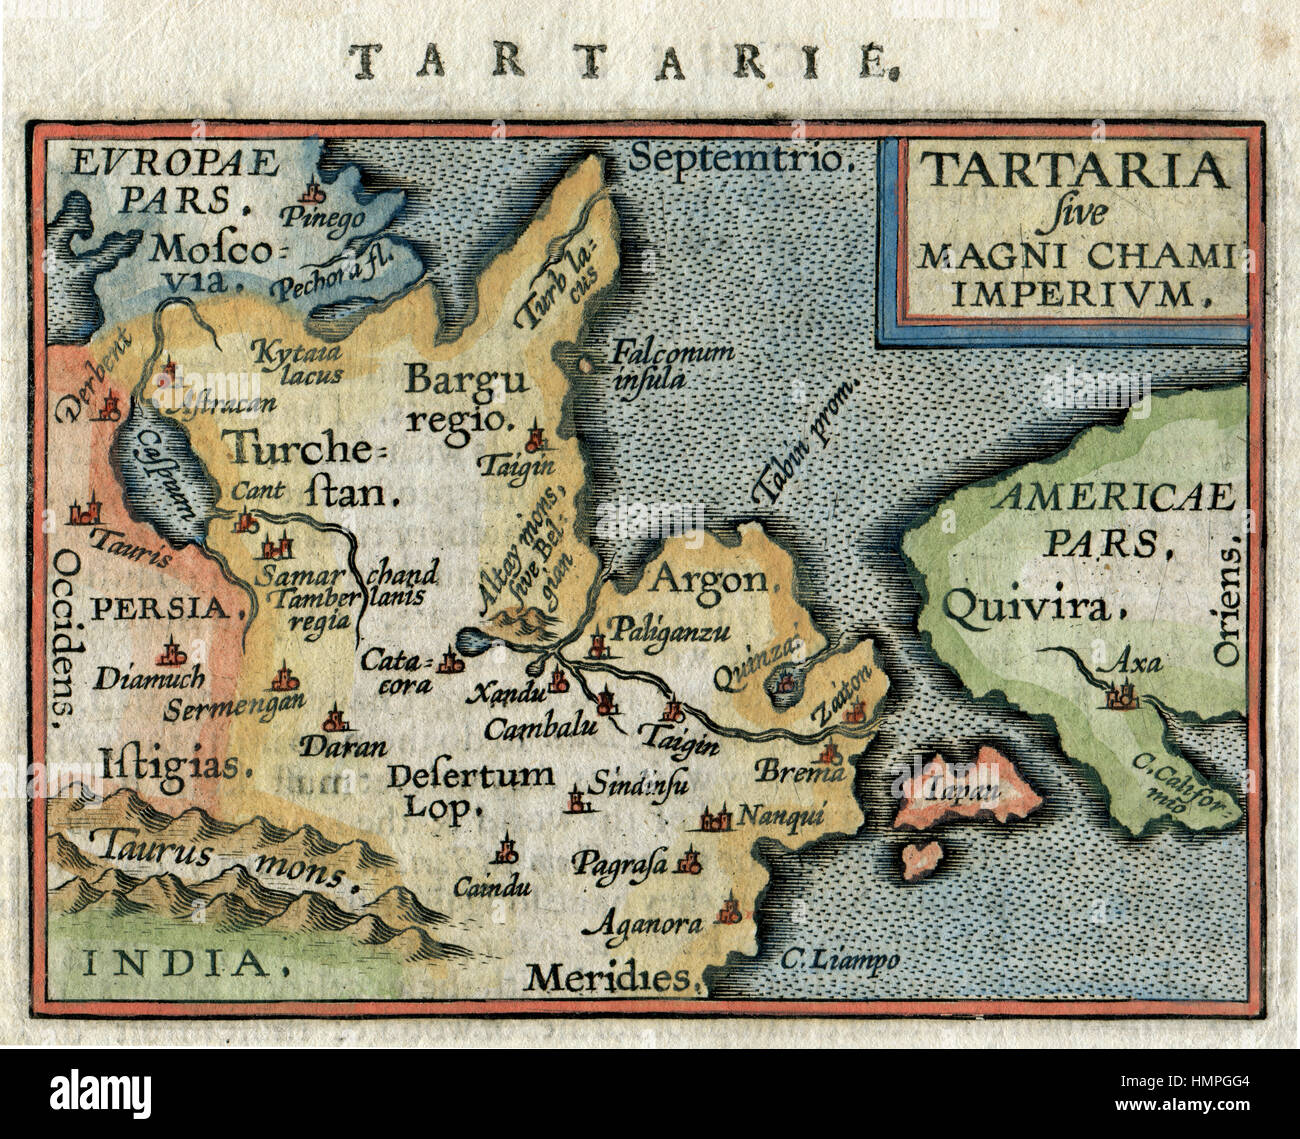 Antique map of china stock photos antique map of china stock antique map tartaria china russia japan amercica by ortelius 1600 stock image gumiabroncs Choice Image